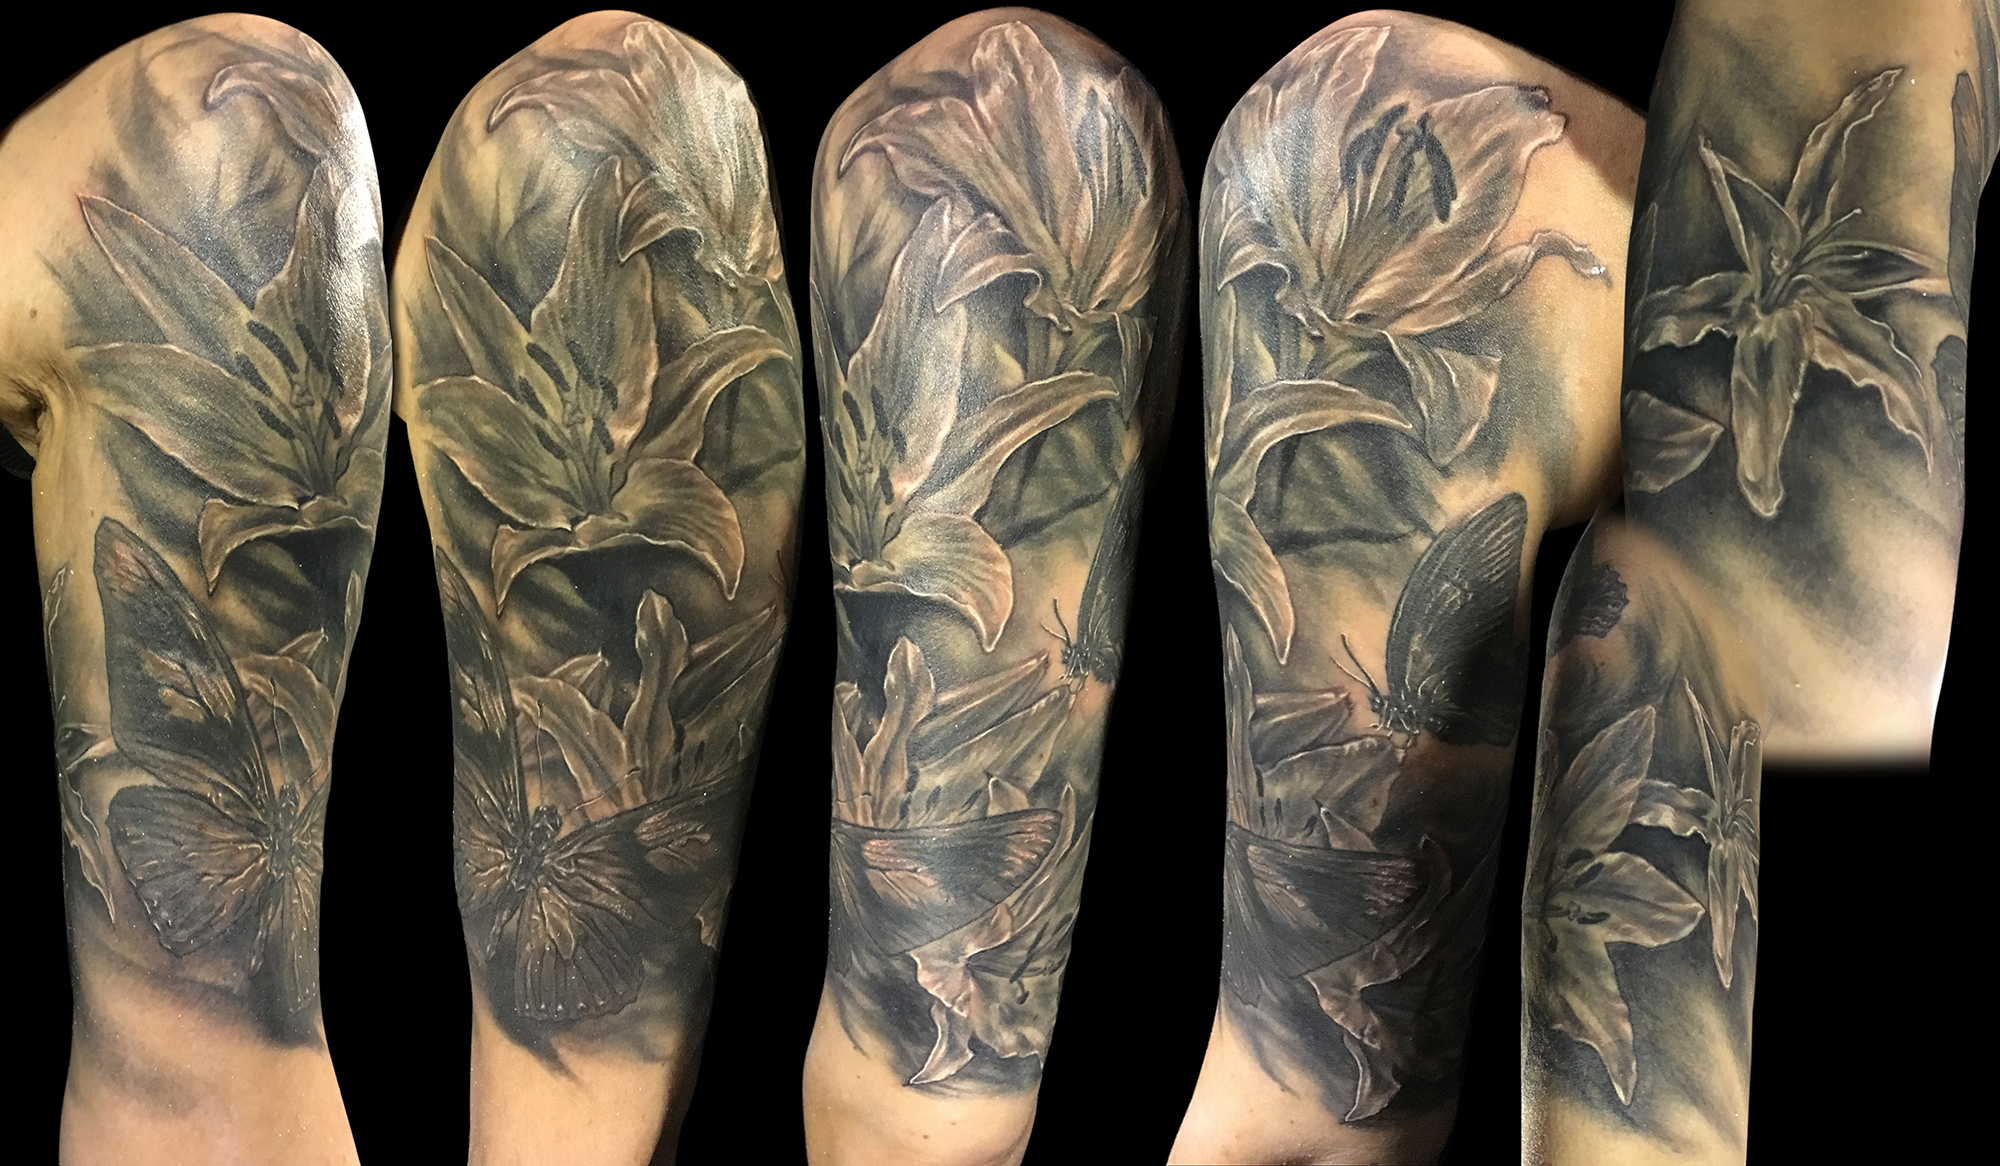 Black and Grey Lily and Butterfly Half Sleeve, (black and grey is healed, white is fresh in this photo)